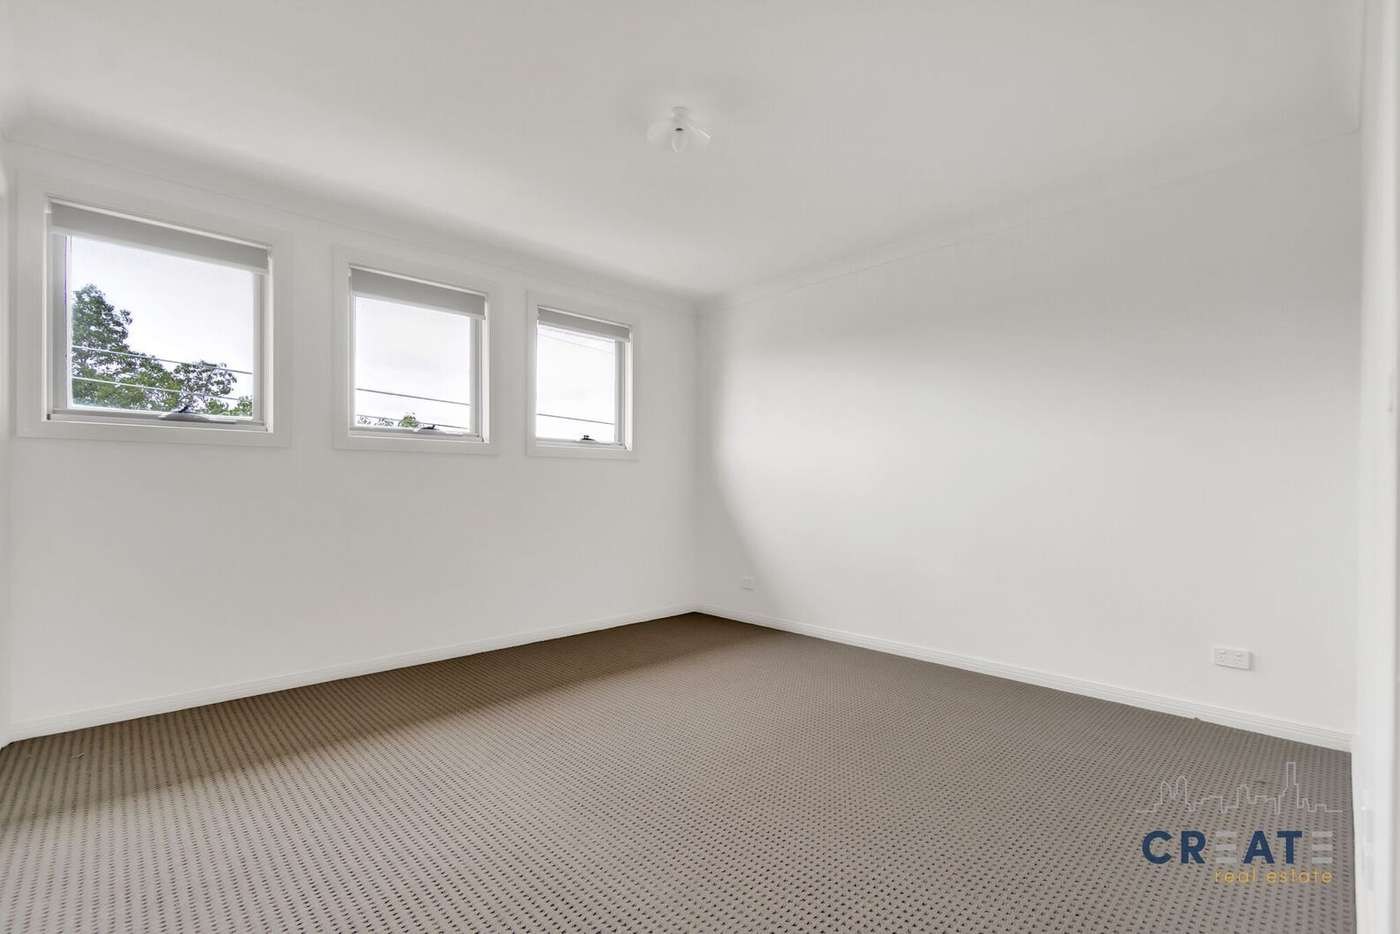 Seventh view of Homely townhouse listing, 12 York Street, Albion VIC 3020